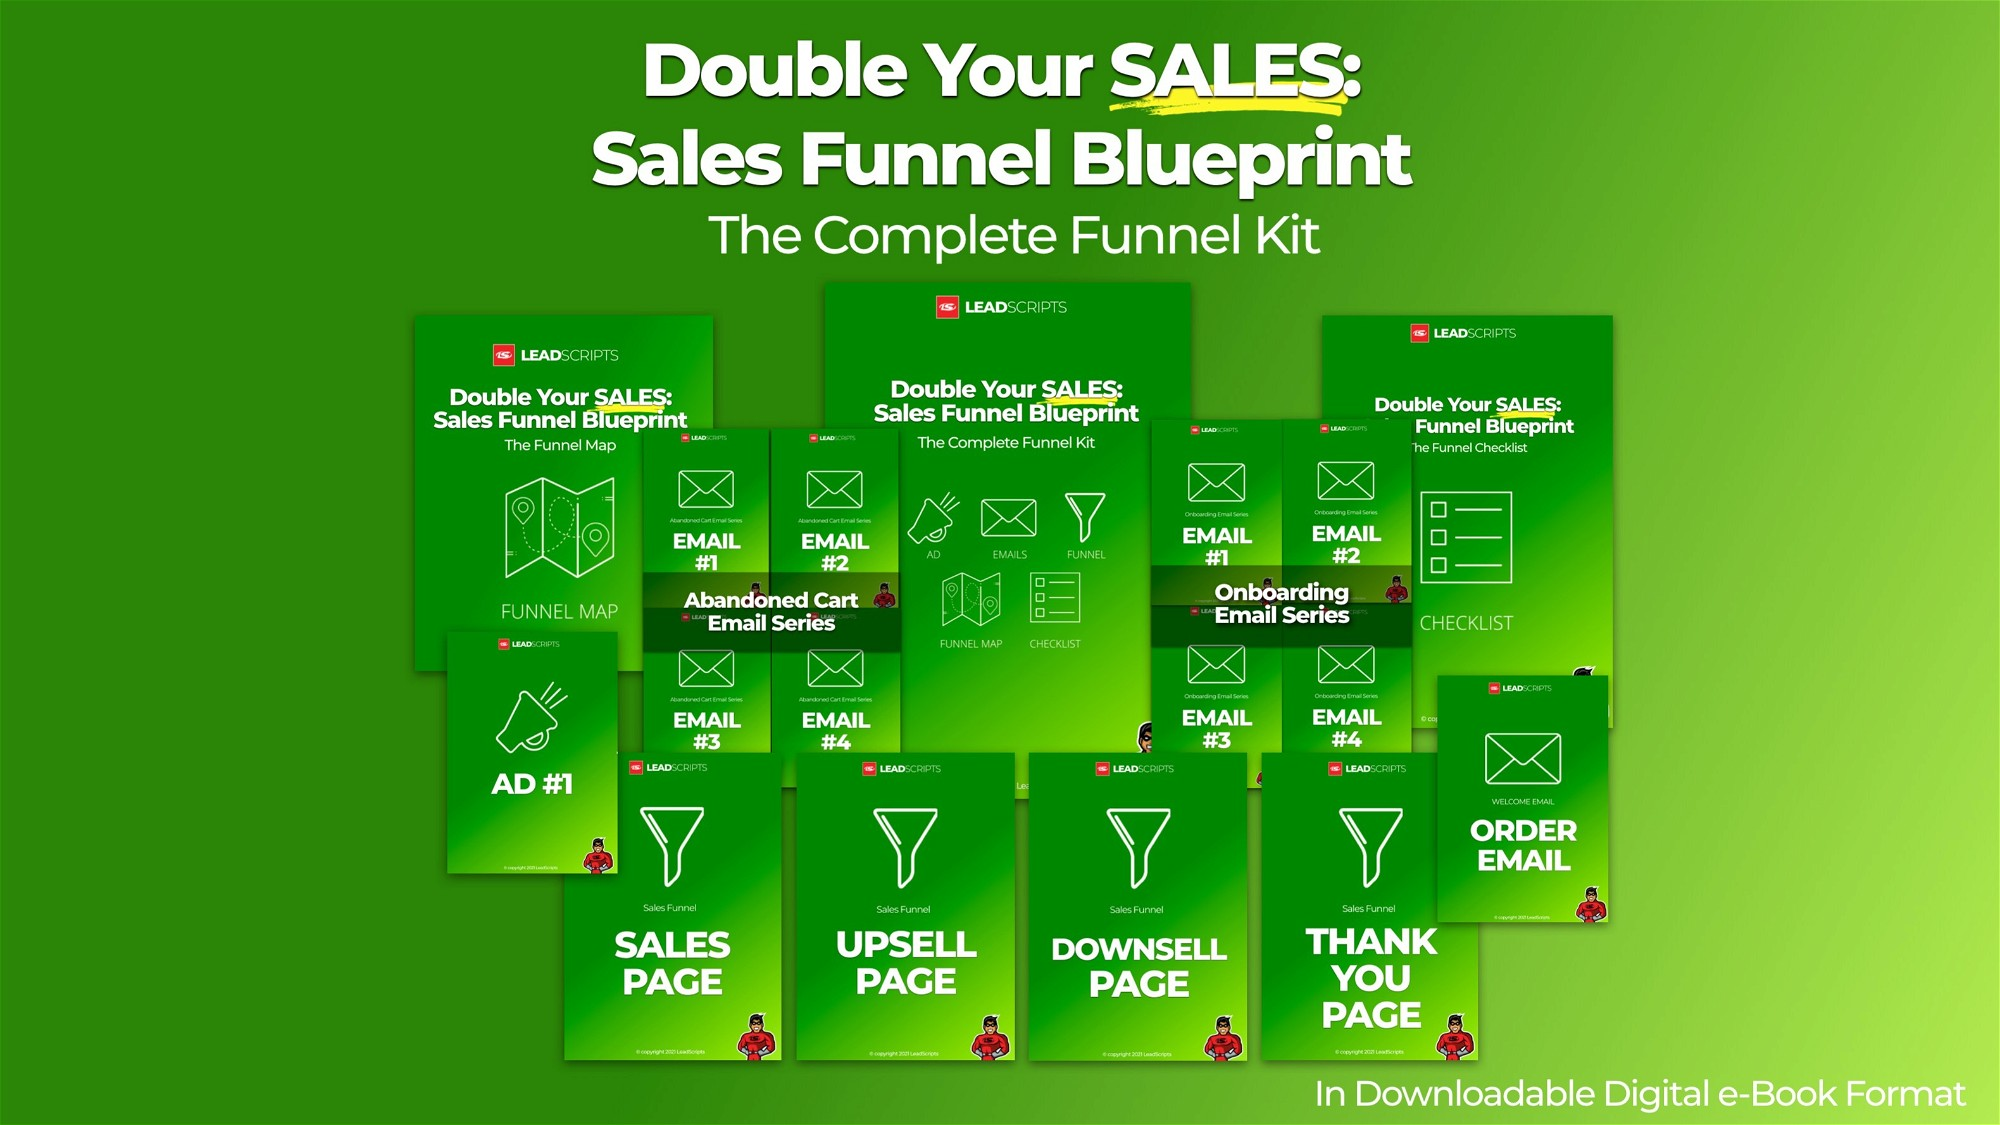 AppSumo Deal for Double Your Sales - Sales Funnel Blueprint - The Complete Funnel Kit